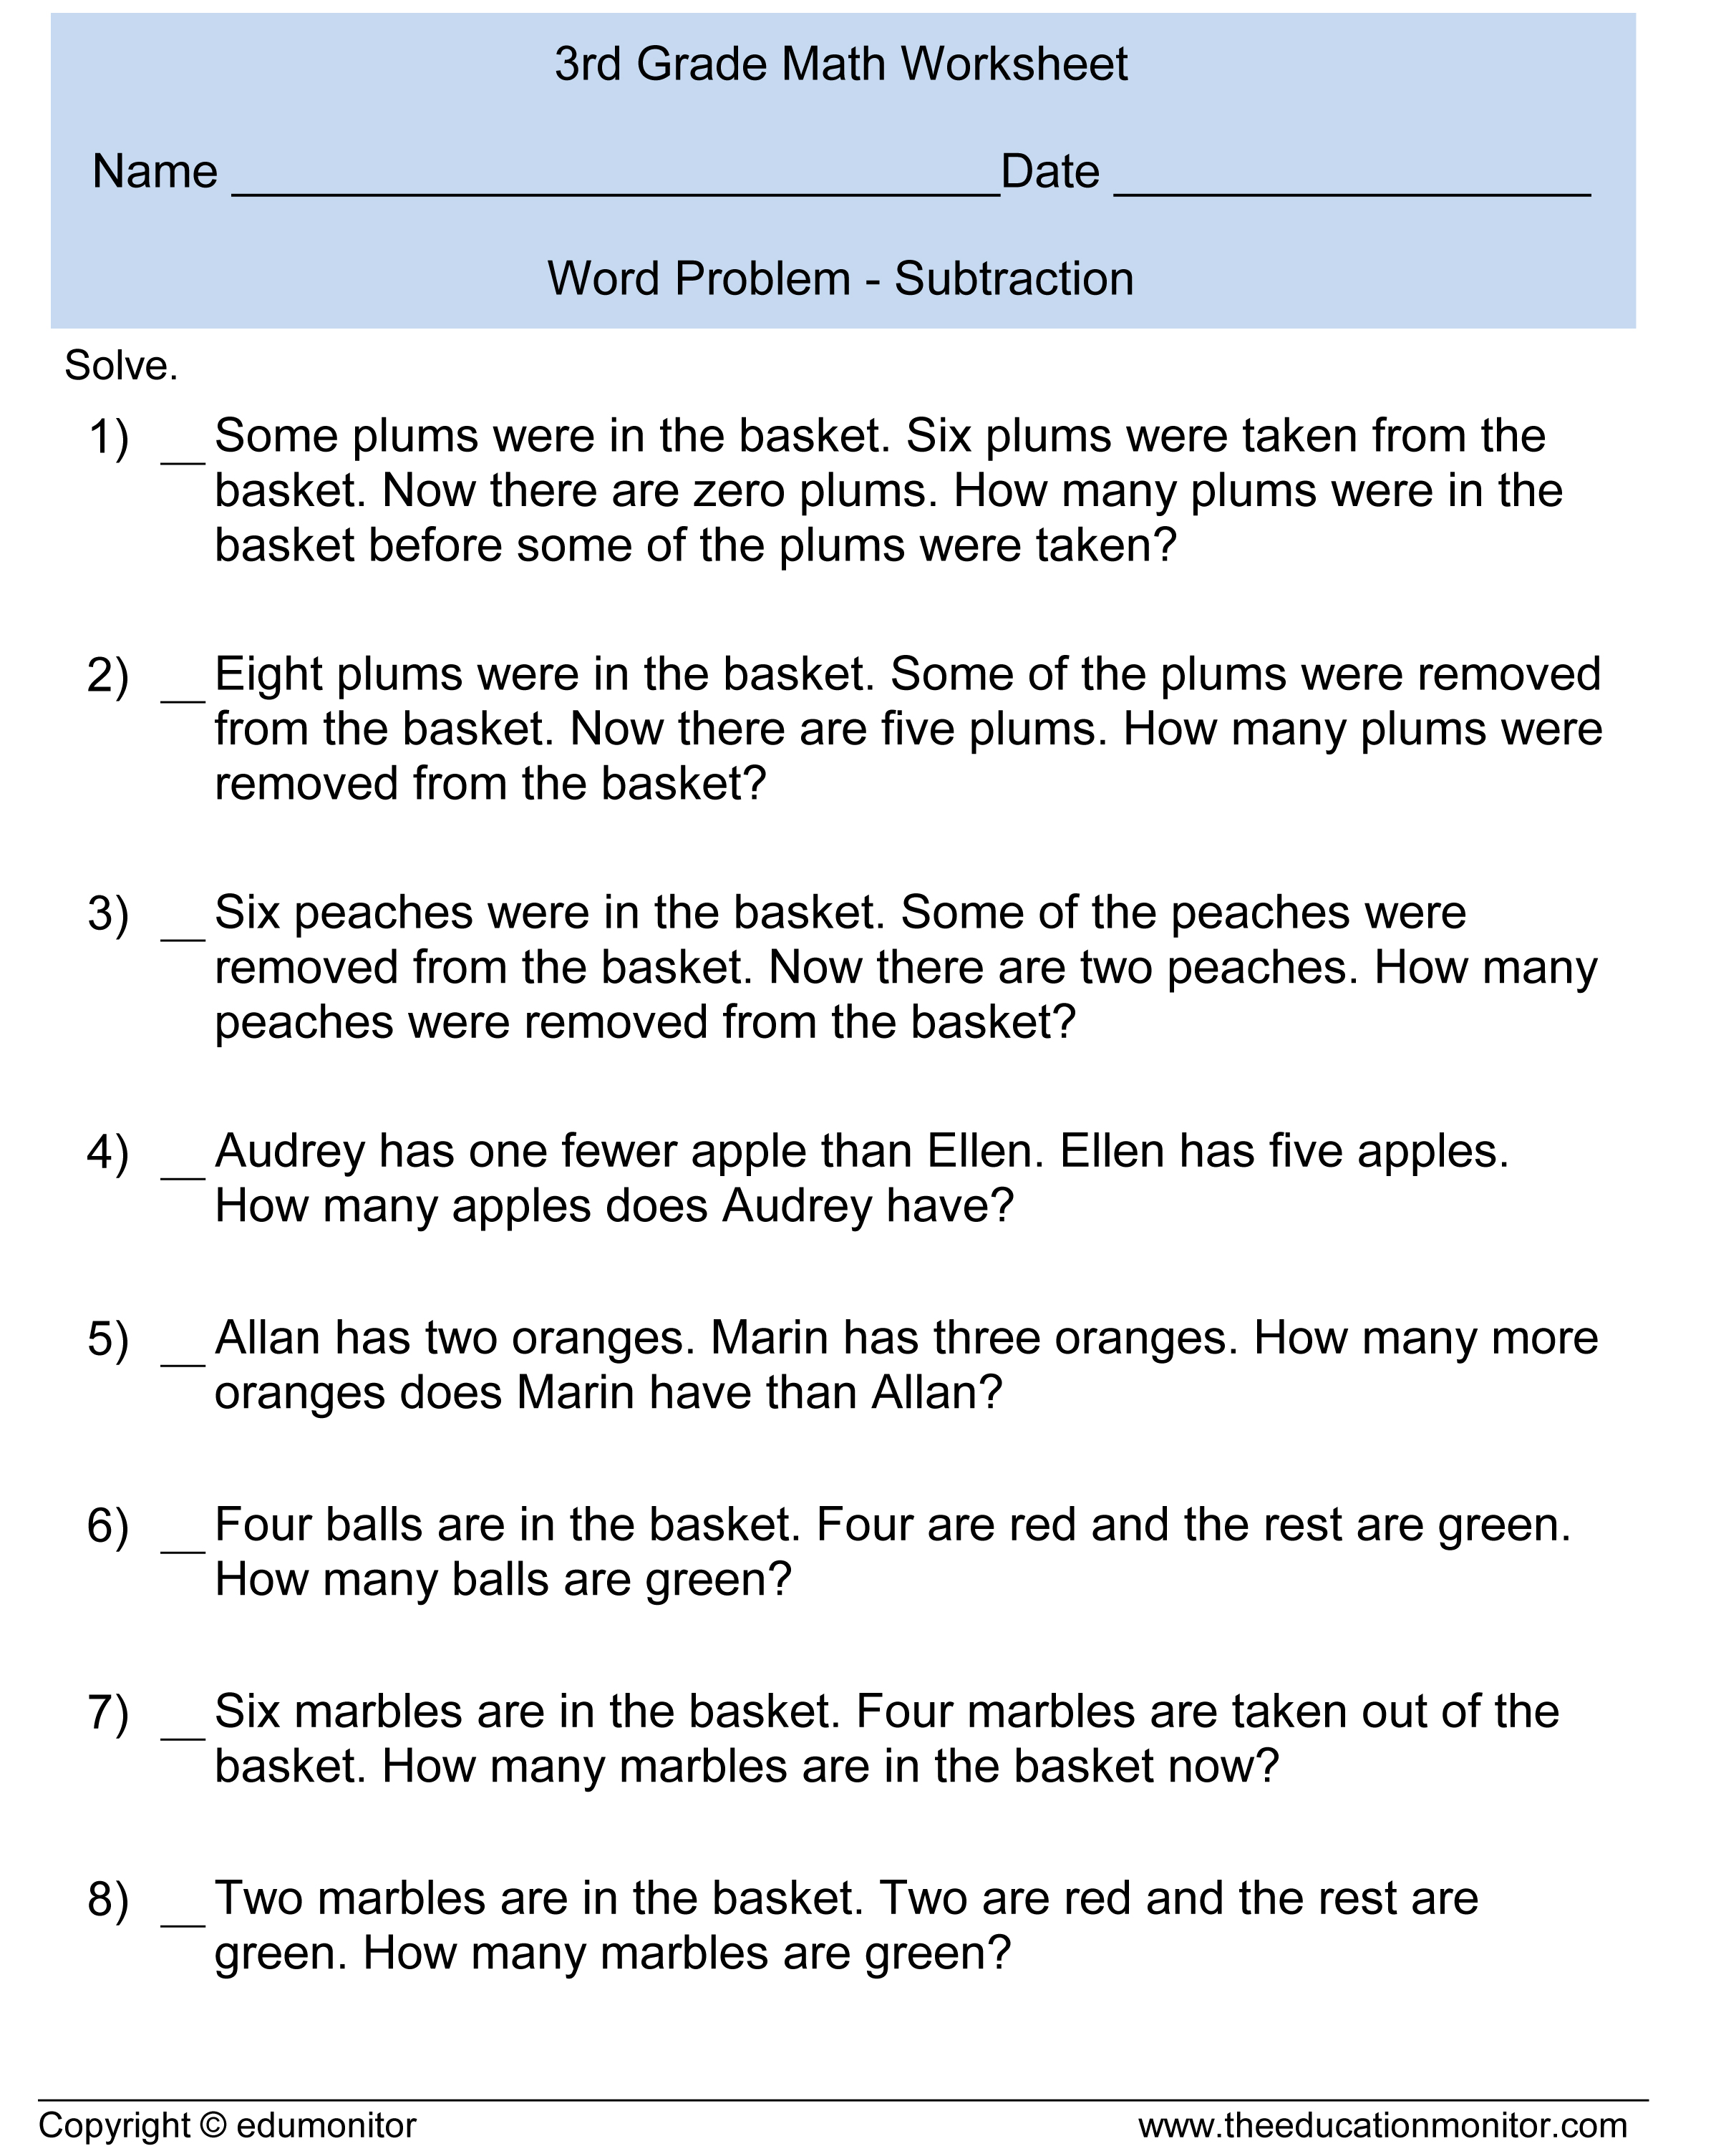 Worksheet Word Problems For Subtraction third grade subtraction word problems3rd math document